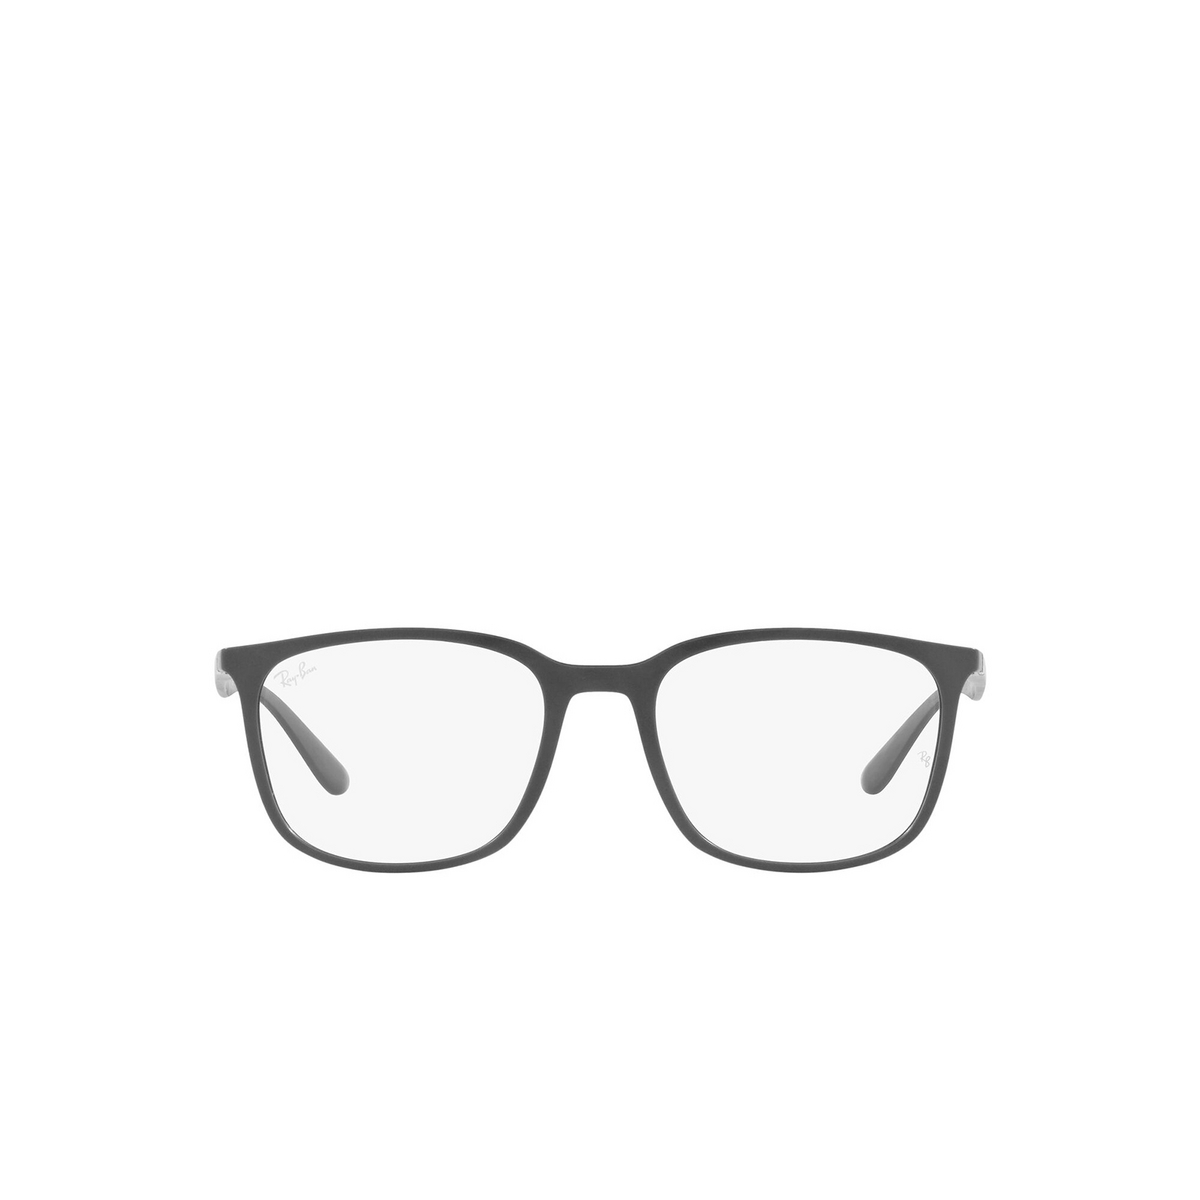 Ray-Ban® Square Eyeglasses: RX7199 color Sand Grey 5521 - front view.